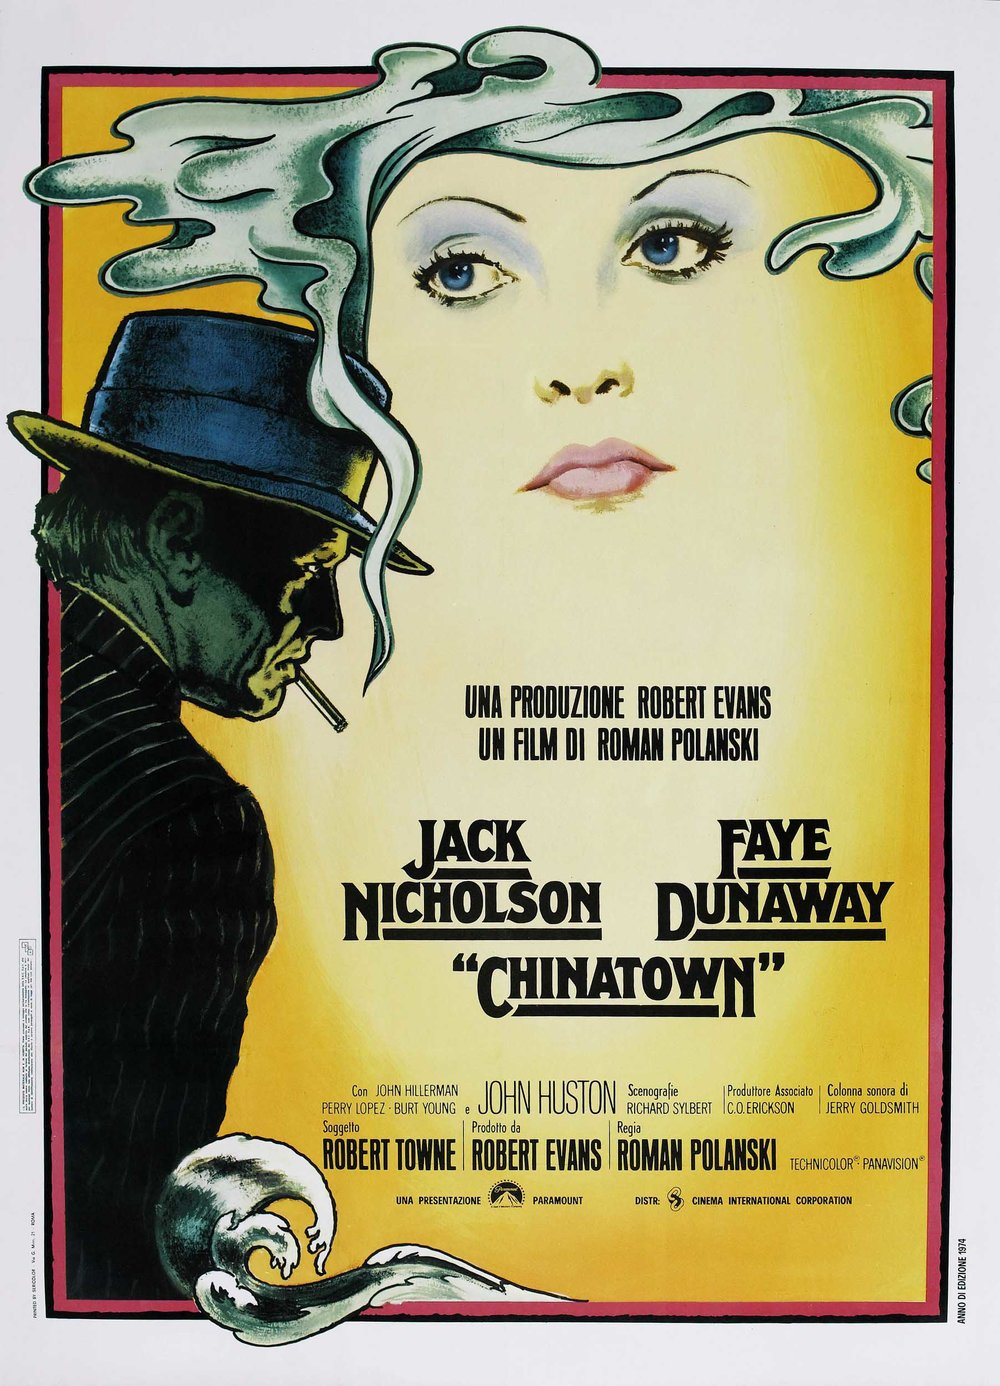 film-noir-chinatown-1974-movie-poster-via-professormortis-wordpress.jpg